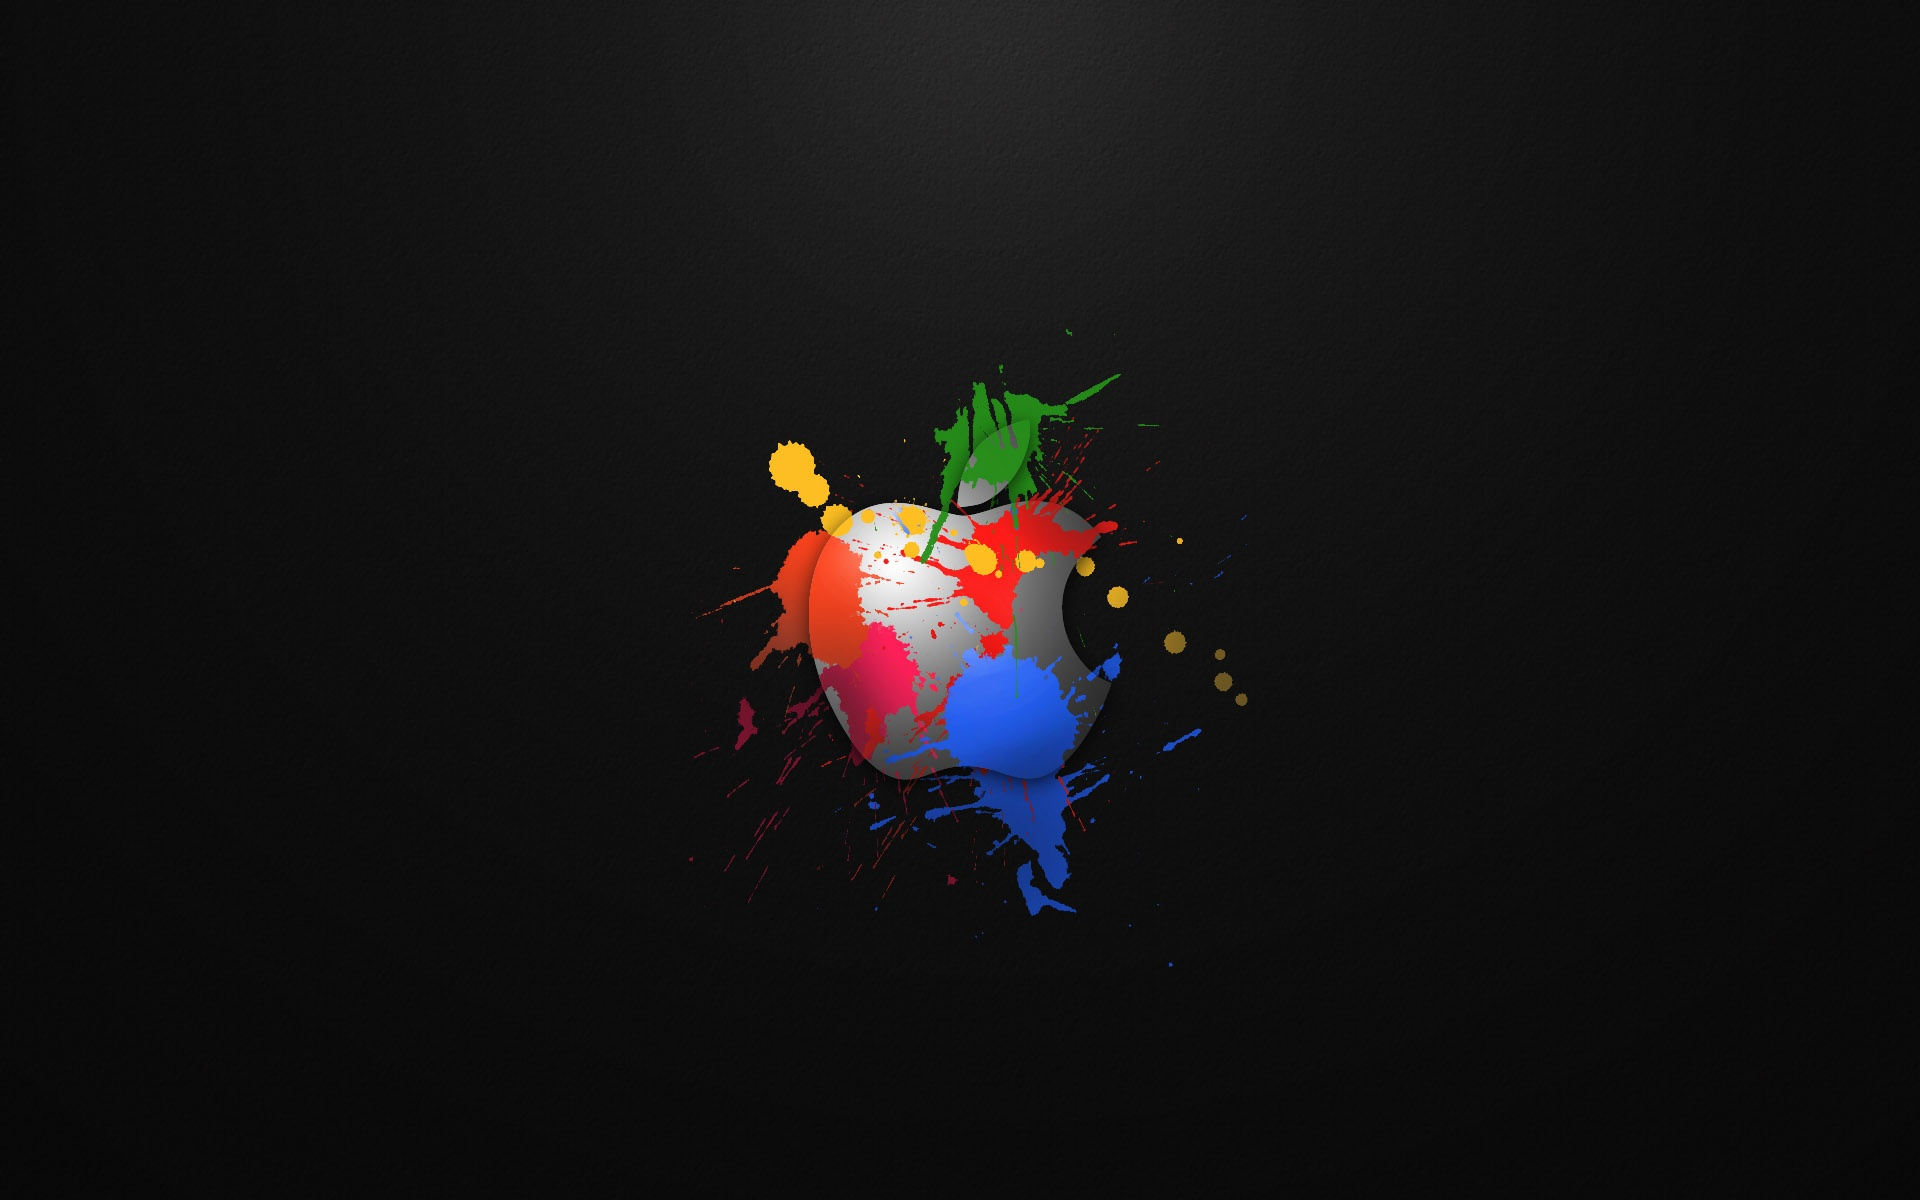 apple desktop wallpaper - sf wallpaper